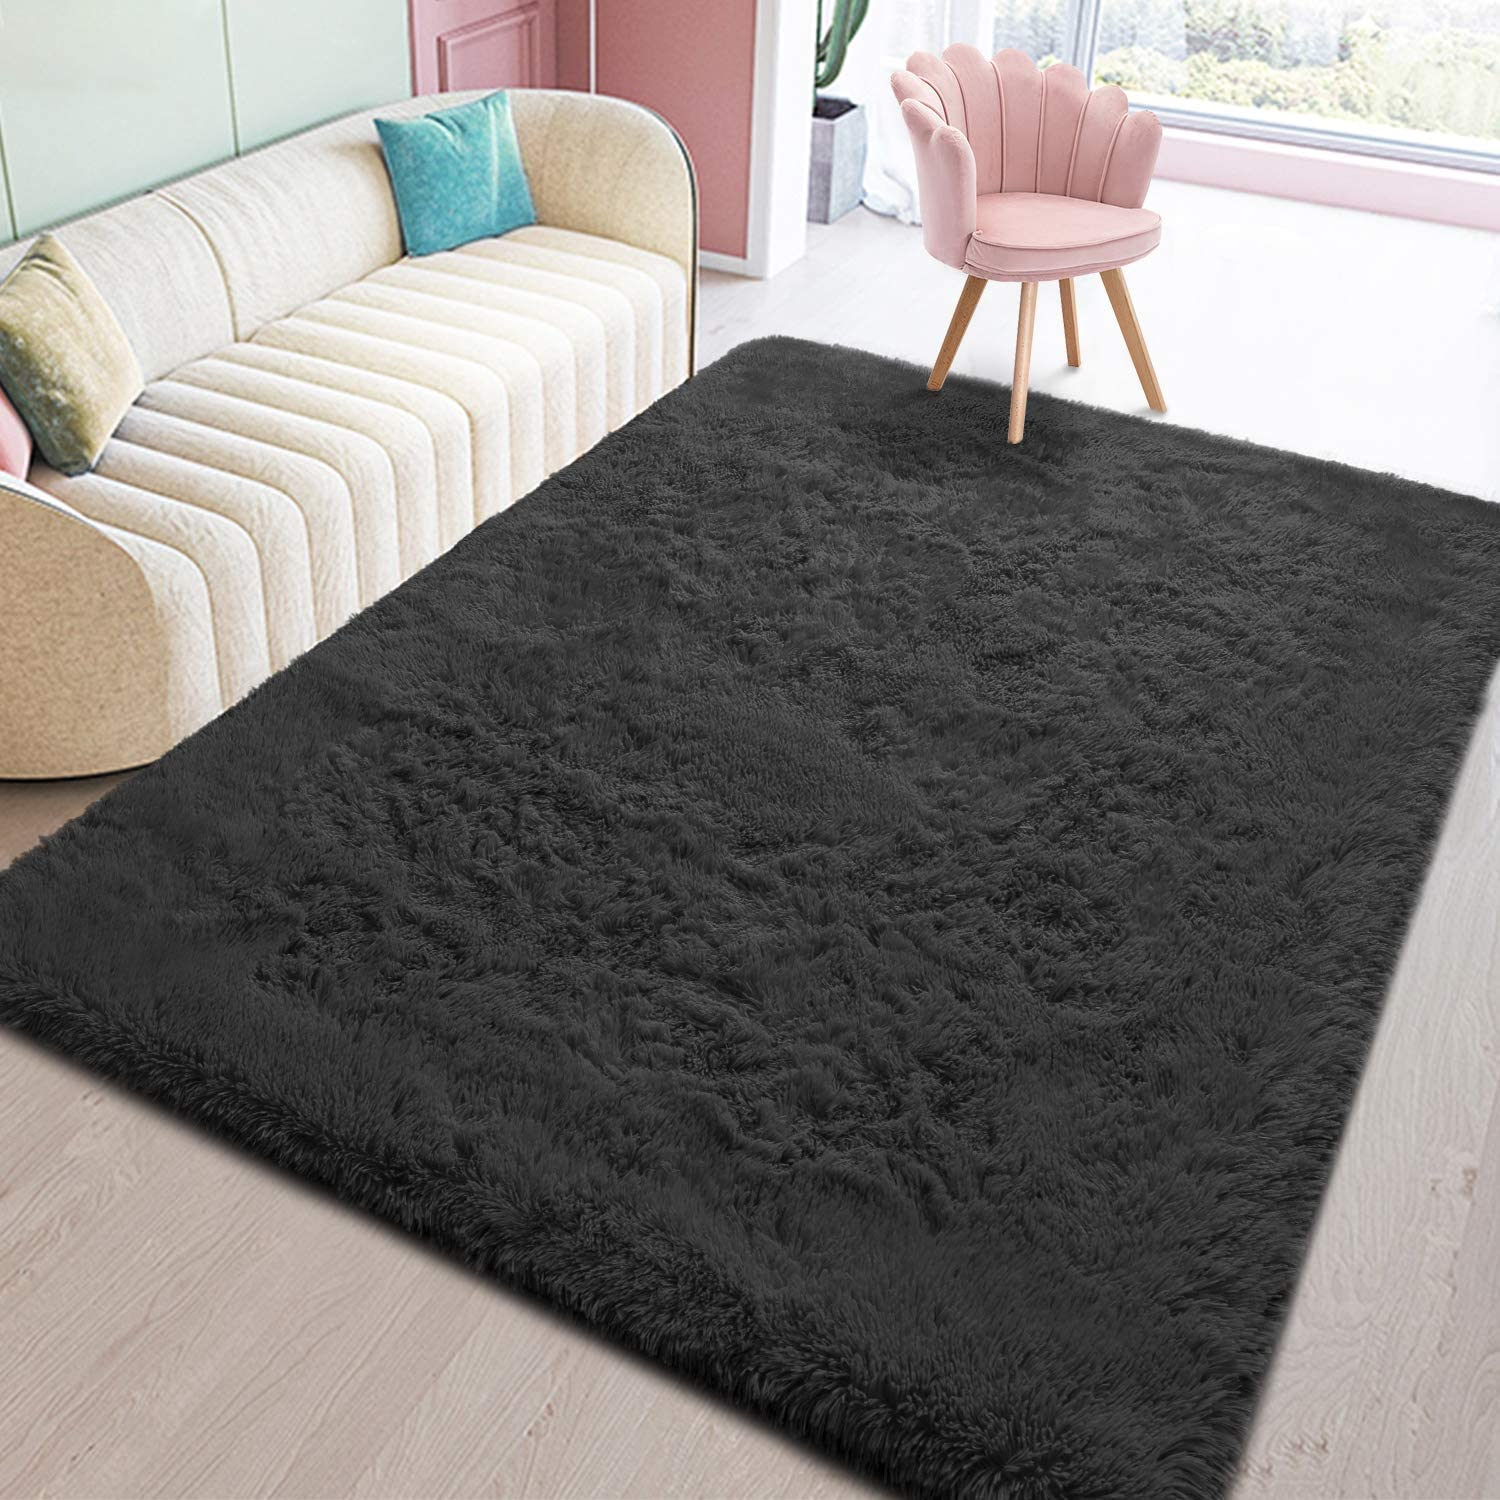 Toneed Black Fluffy Bedroom Area Rug 4 x 6 Feet Clearance Modern Area Rugs for Boys Girls Kid Living Room College Dorm Nursery Home Decorations Carpet